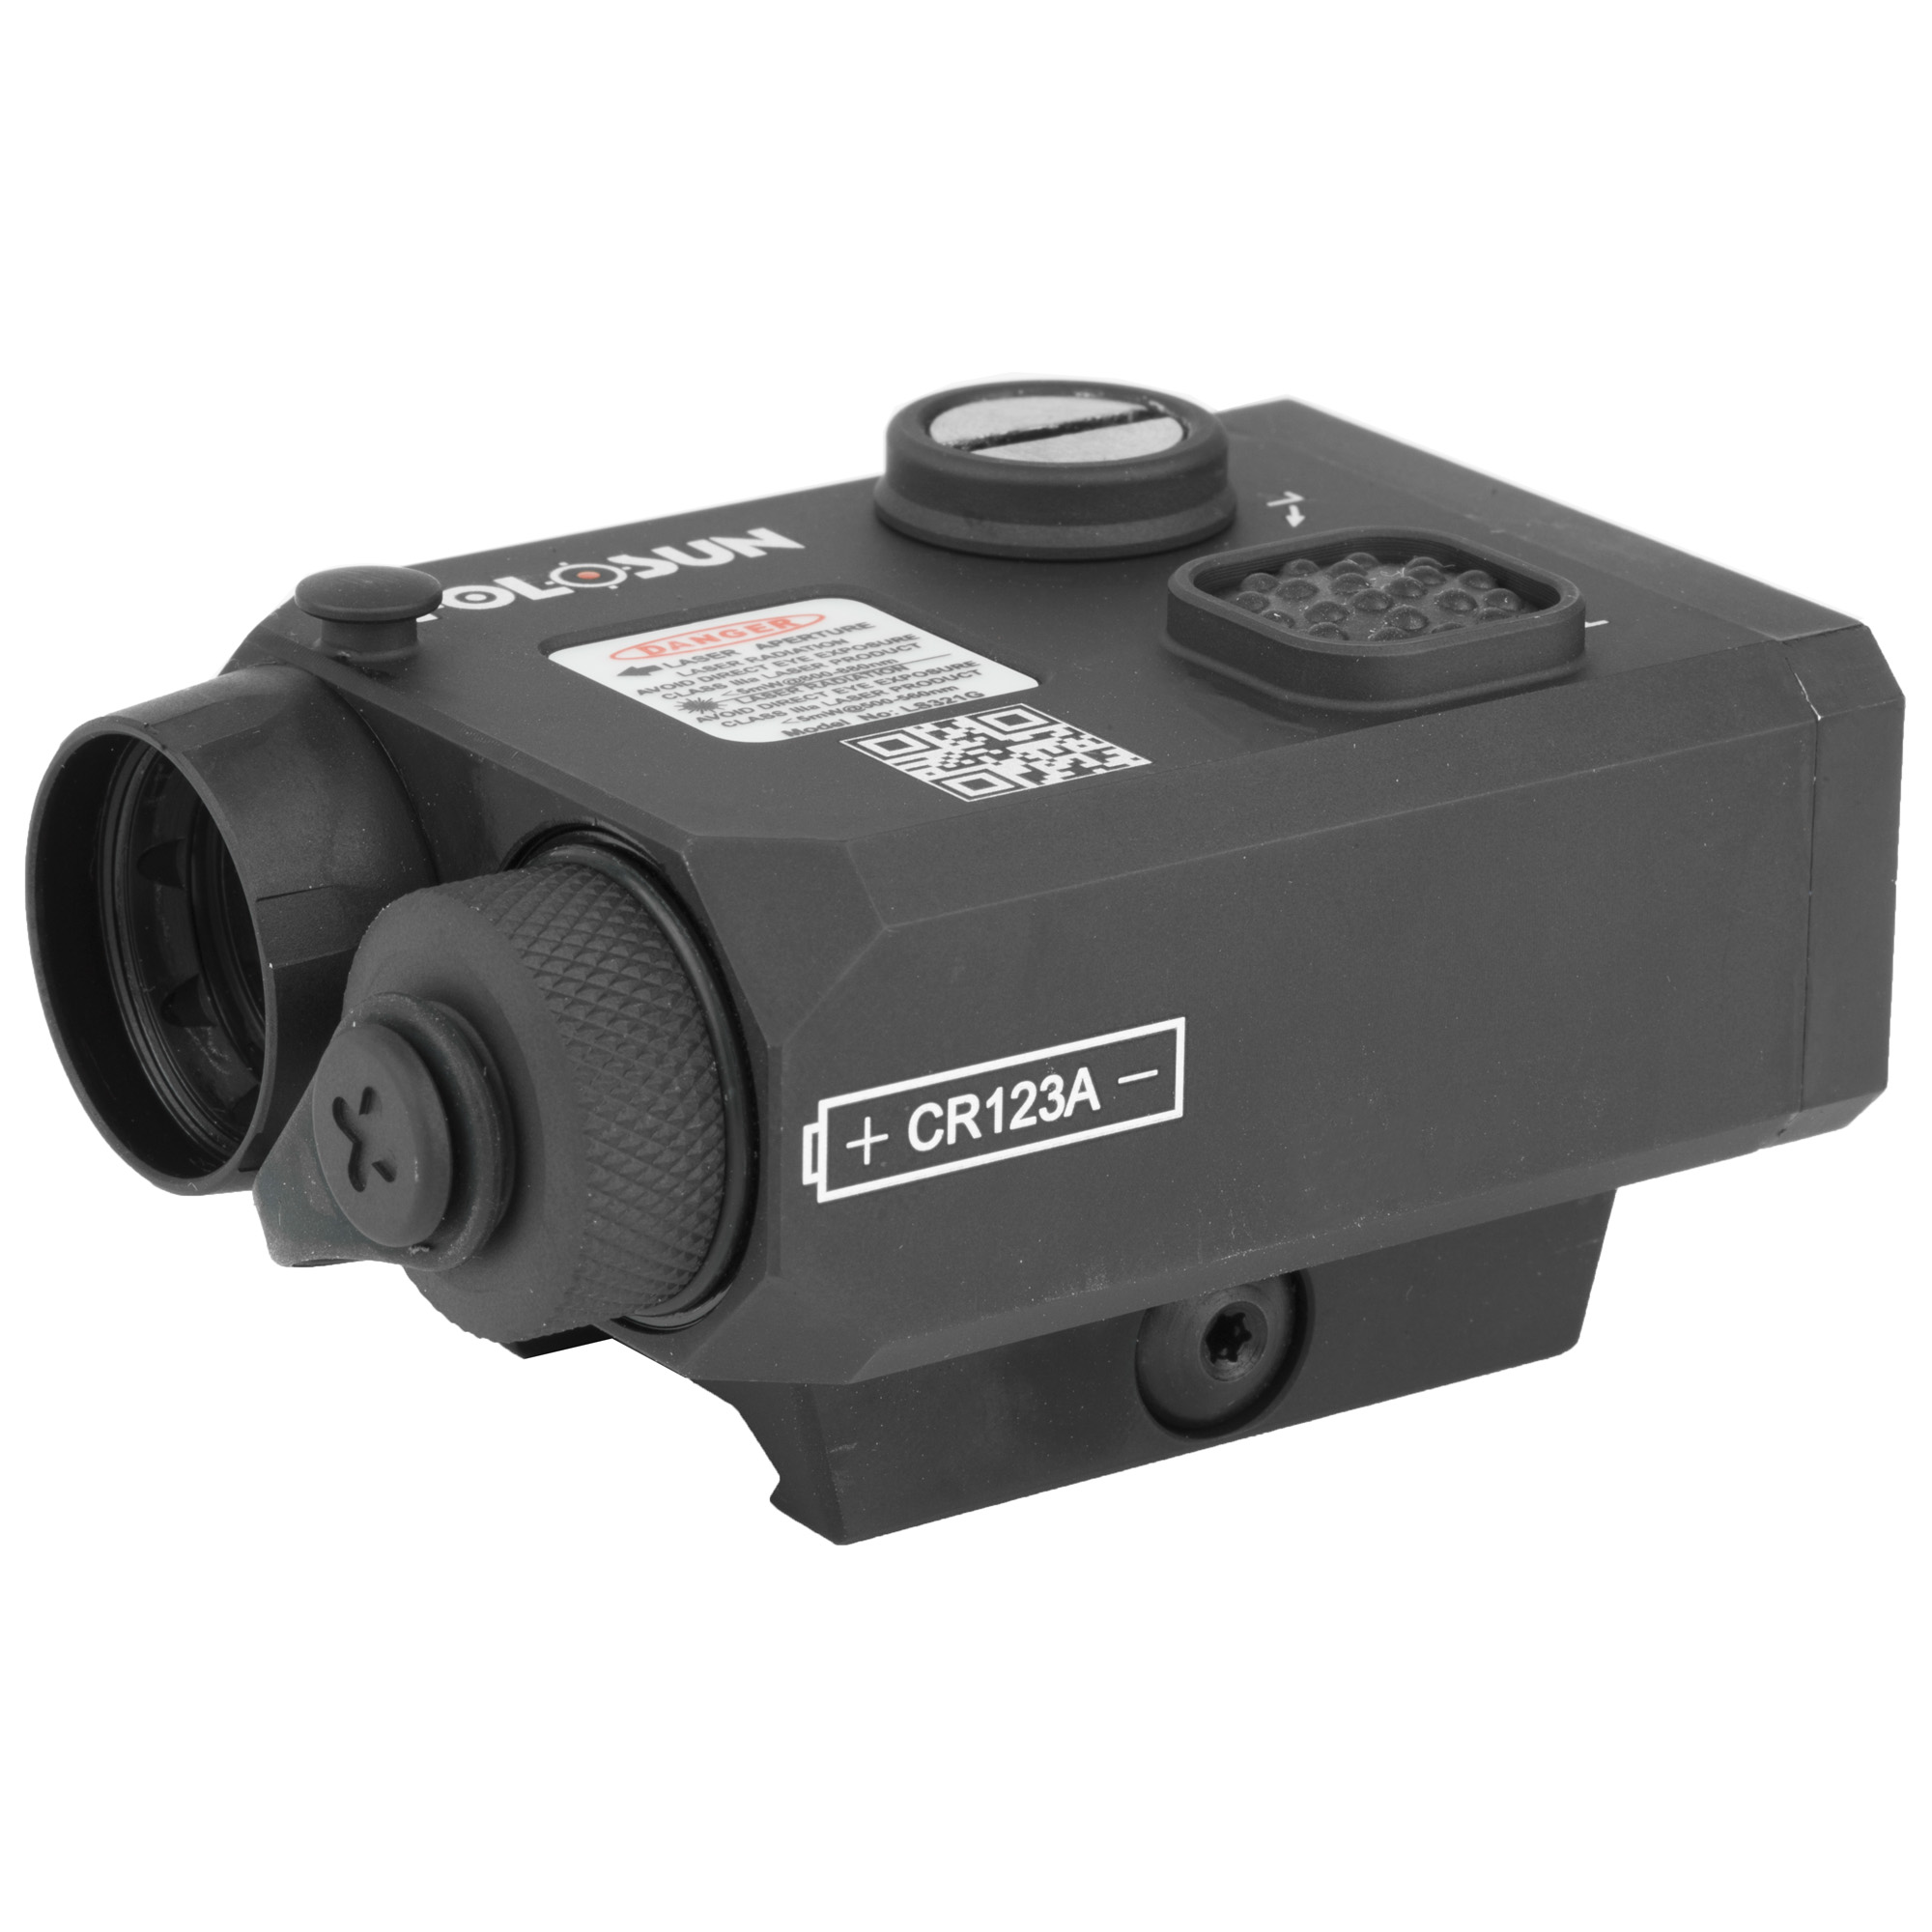 """LS321 is a multi-laser device that integrates green laser"""" IR laser and IR illuminator. It has a mode selector to choose the different functions. The operator uses W&E adjuster to adjust the 3 laser beams at the same time. The IR illuminator-focusing knob is located at the rear of the unit for ease of adjustment for operator."""